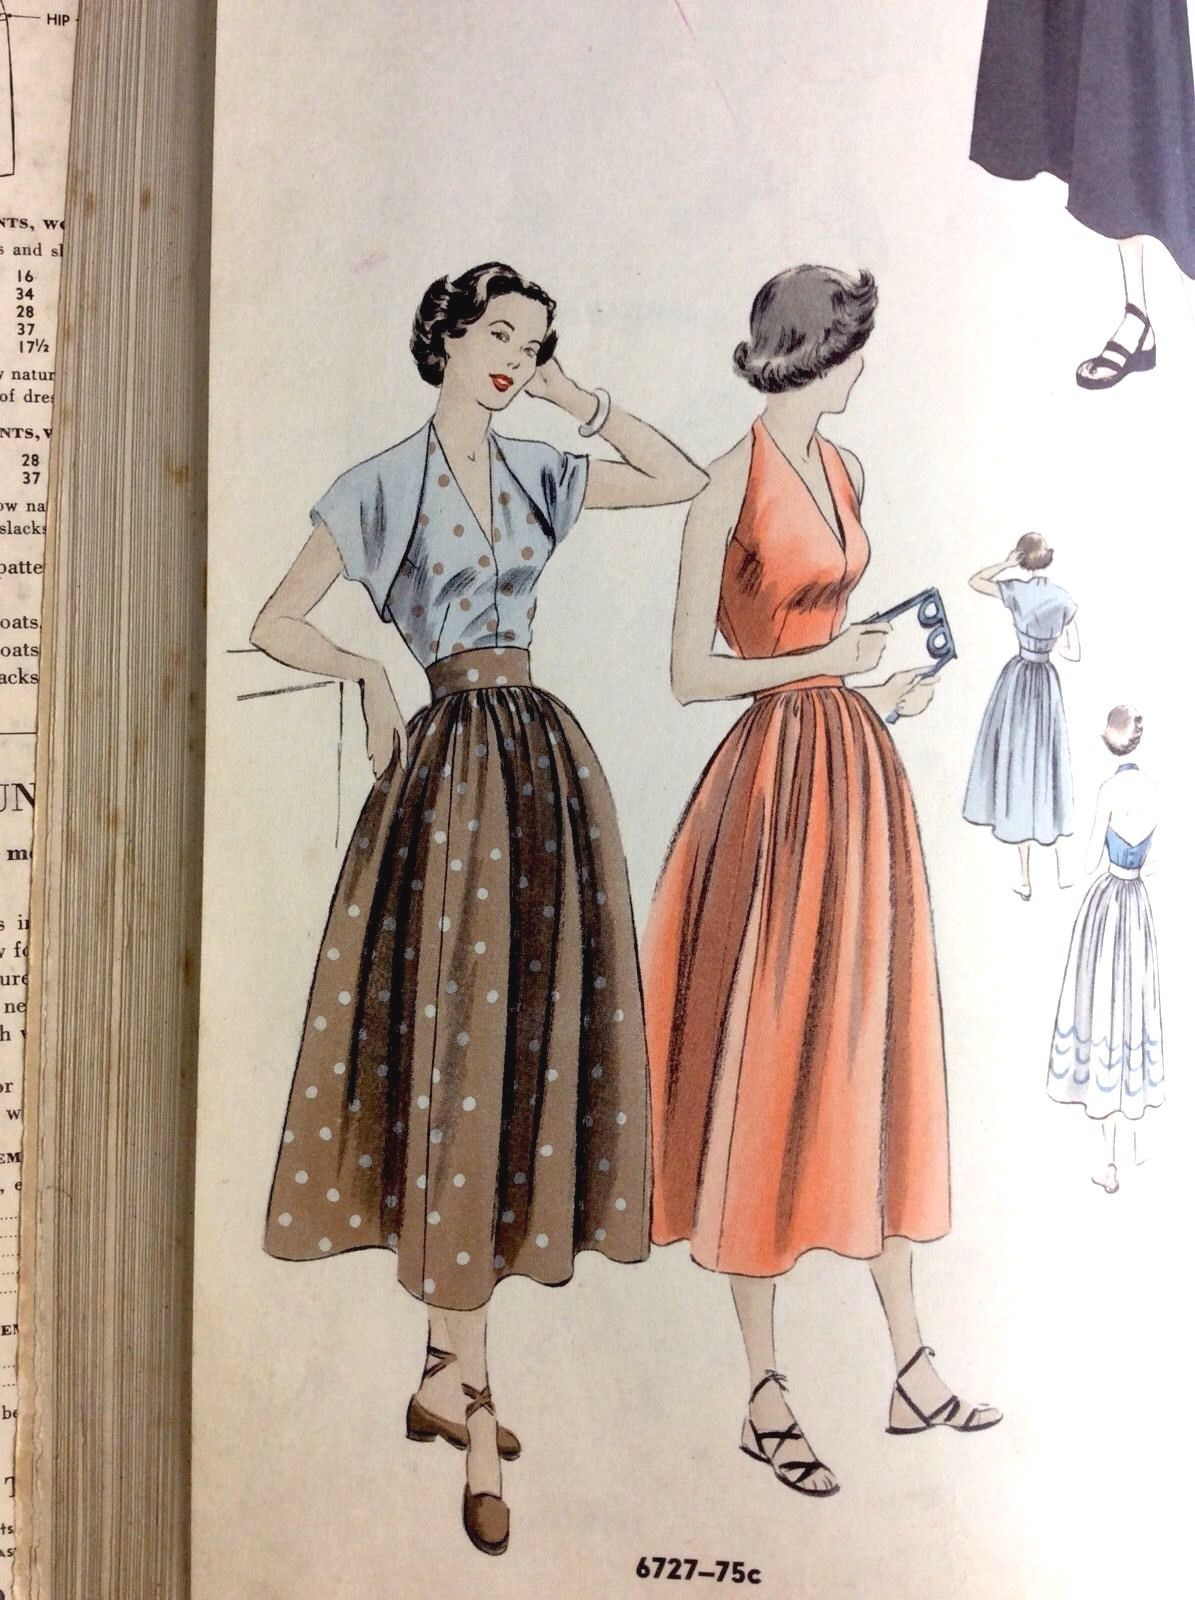 Vtg Vogue Sewing Pattern Counter Catalog Feb 1950 Hardcover Bound ...